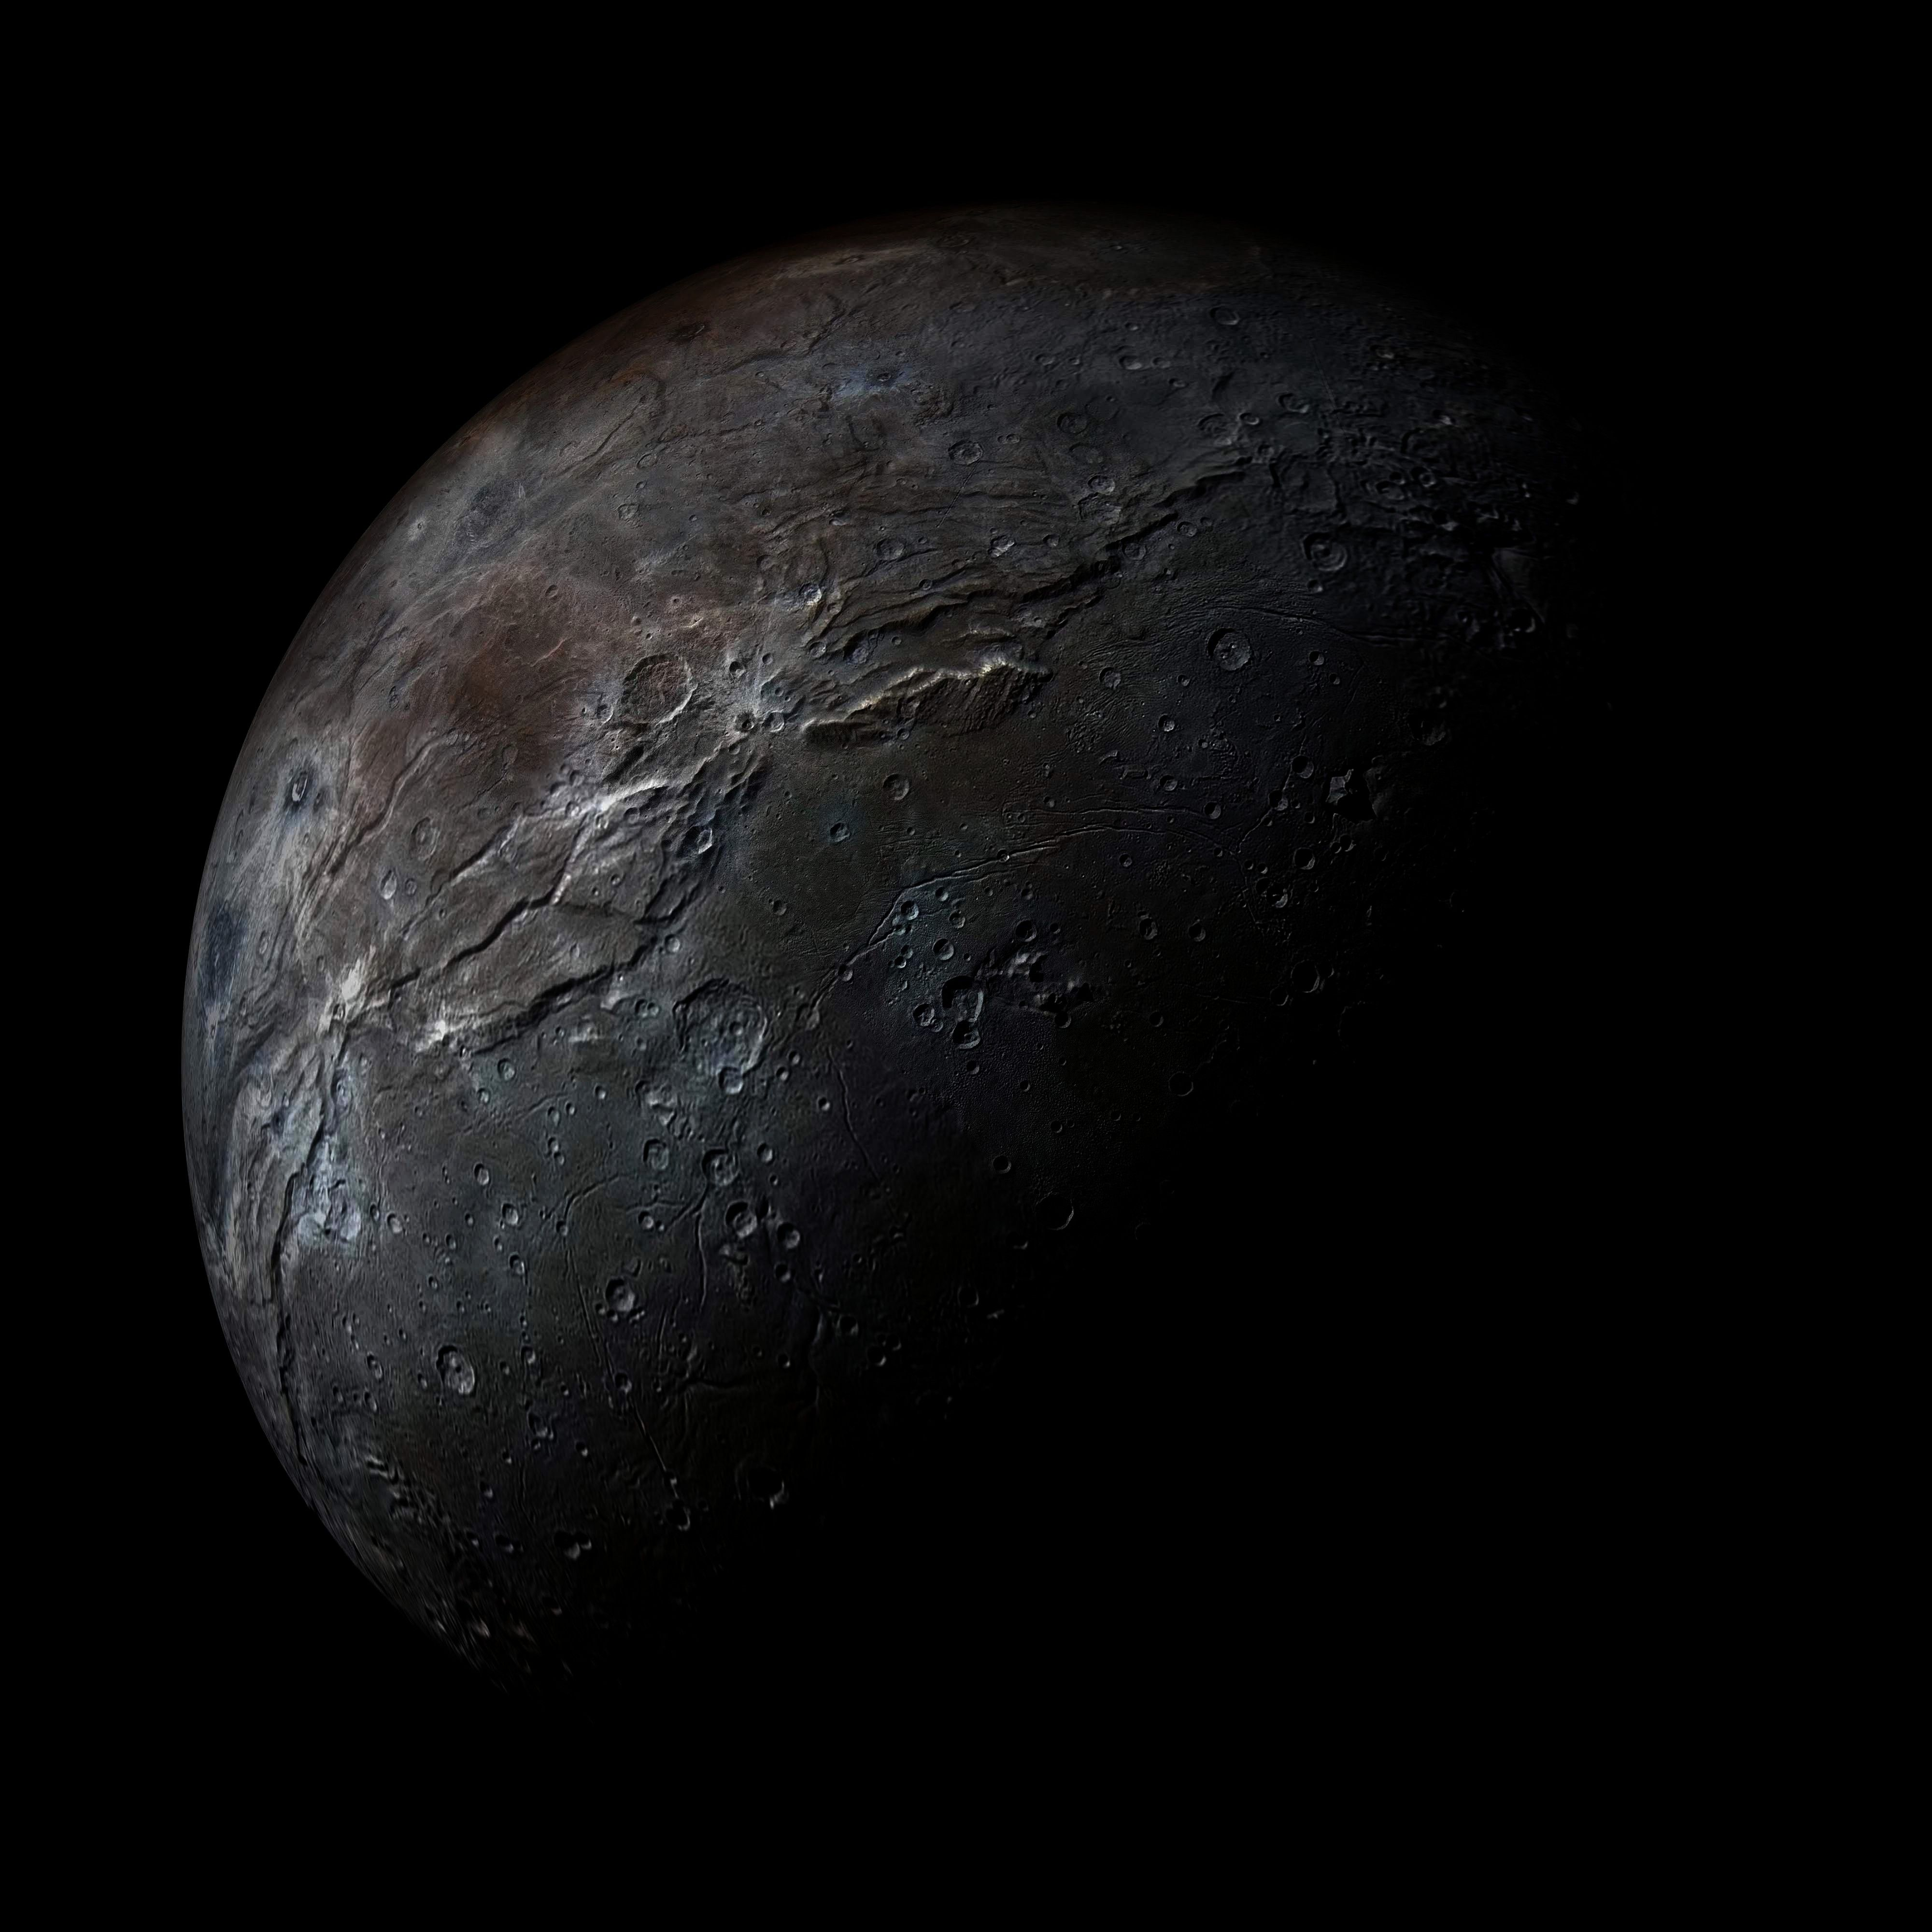 In Your Place  Spaceporn  Space On Your Face In Your Place Plutos moon Charon It has half the diameter of Pluto and is so large that the two bodies orbit a point between...